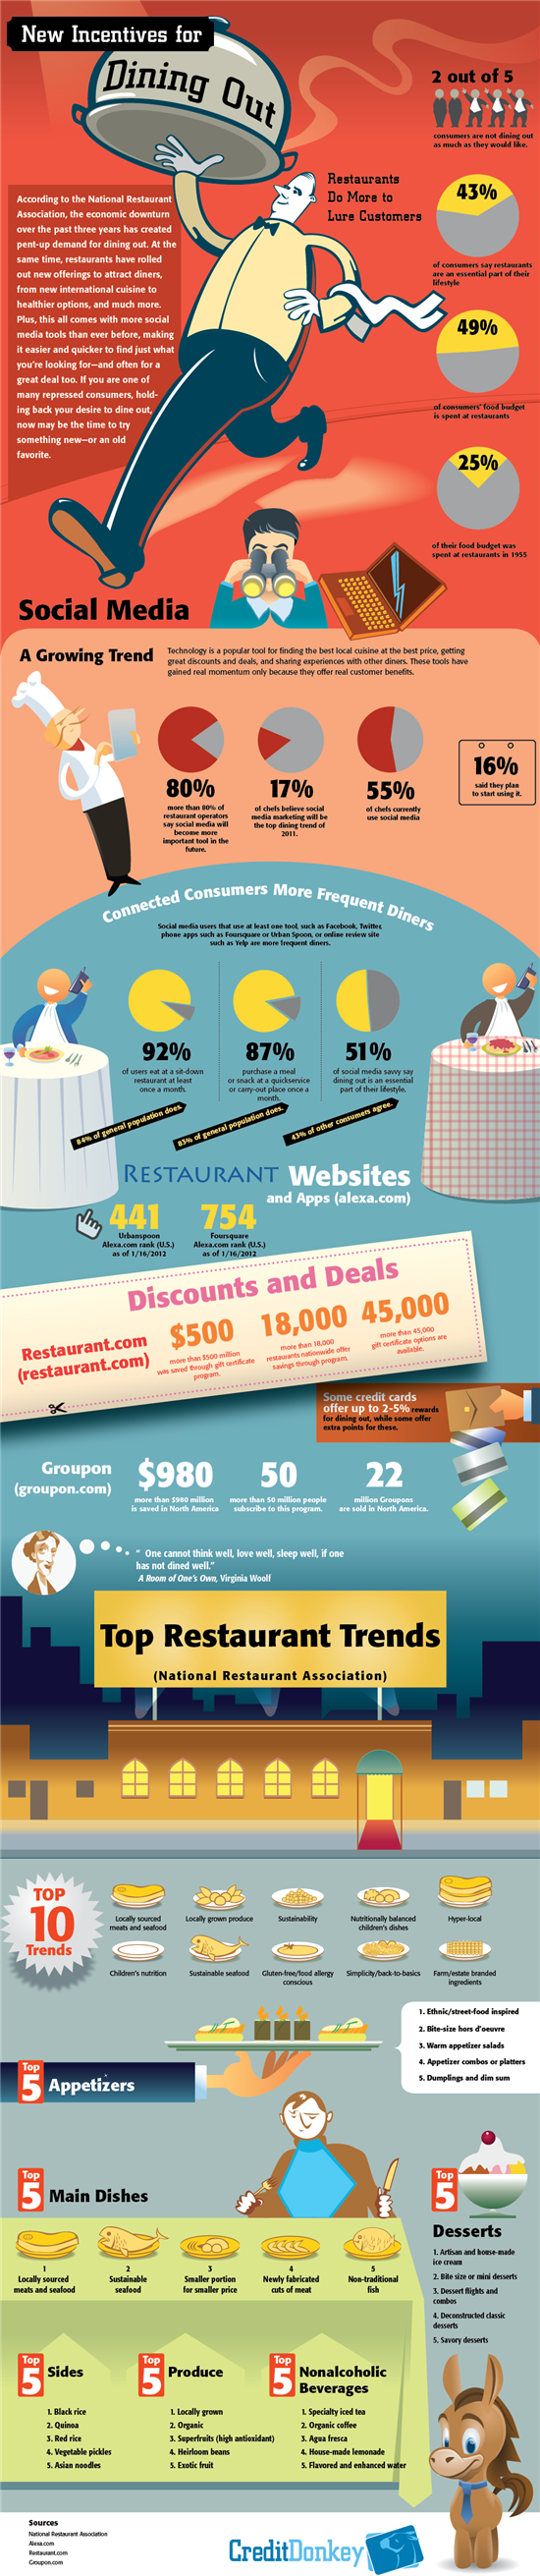 Infographic: Restaurant Trends